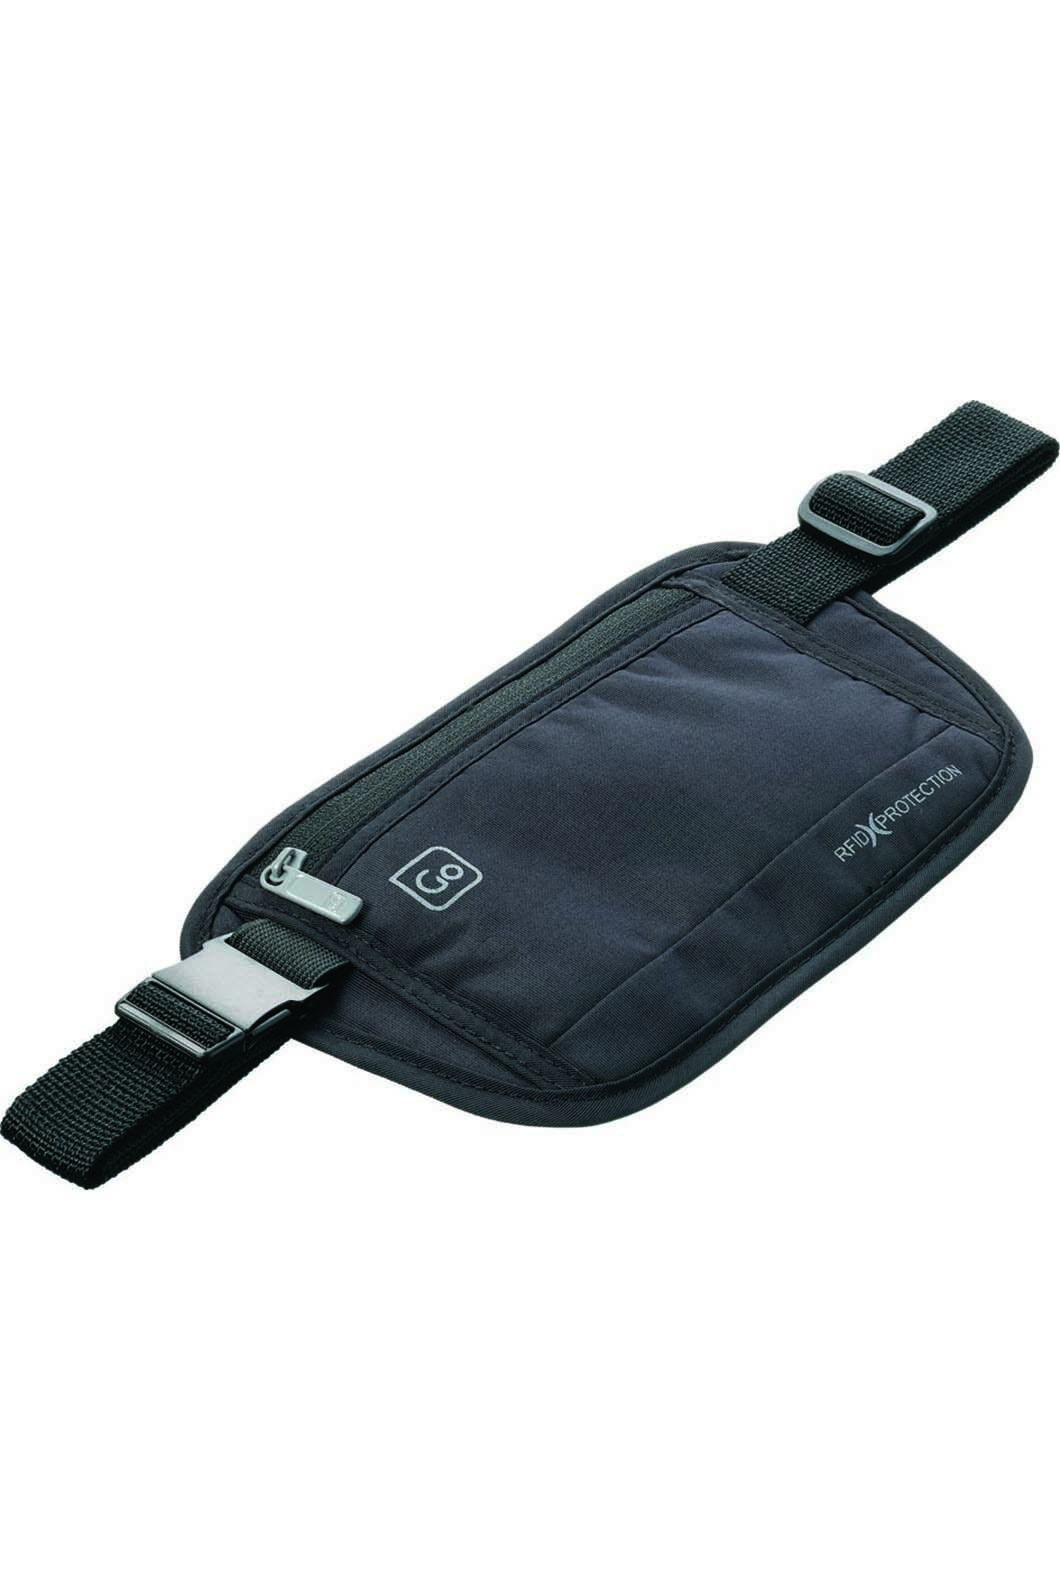 Go Travel RFID Money Belt, None, hi-res